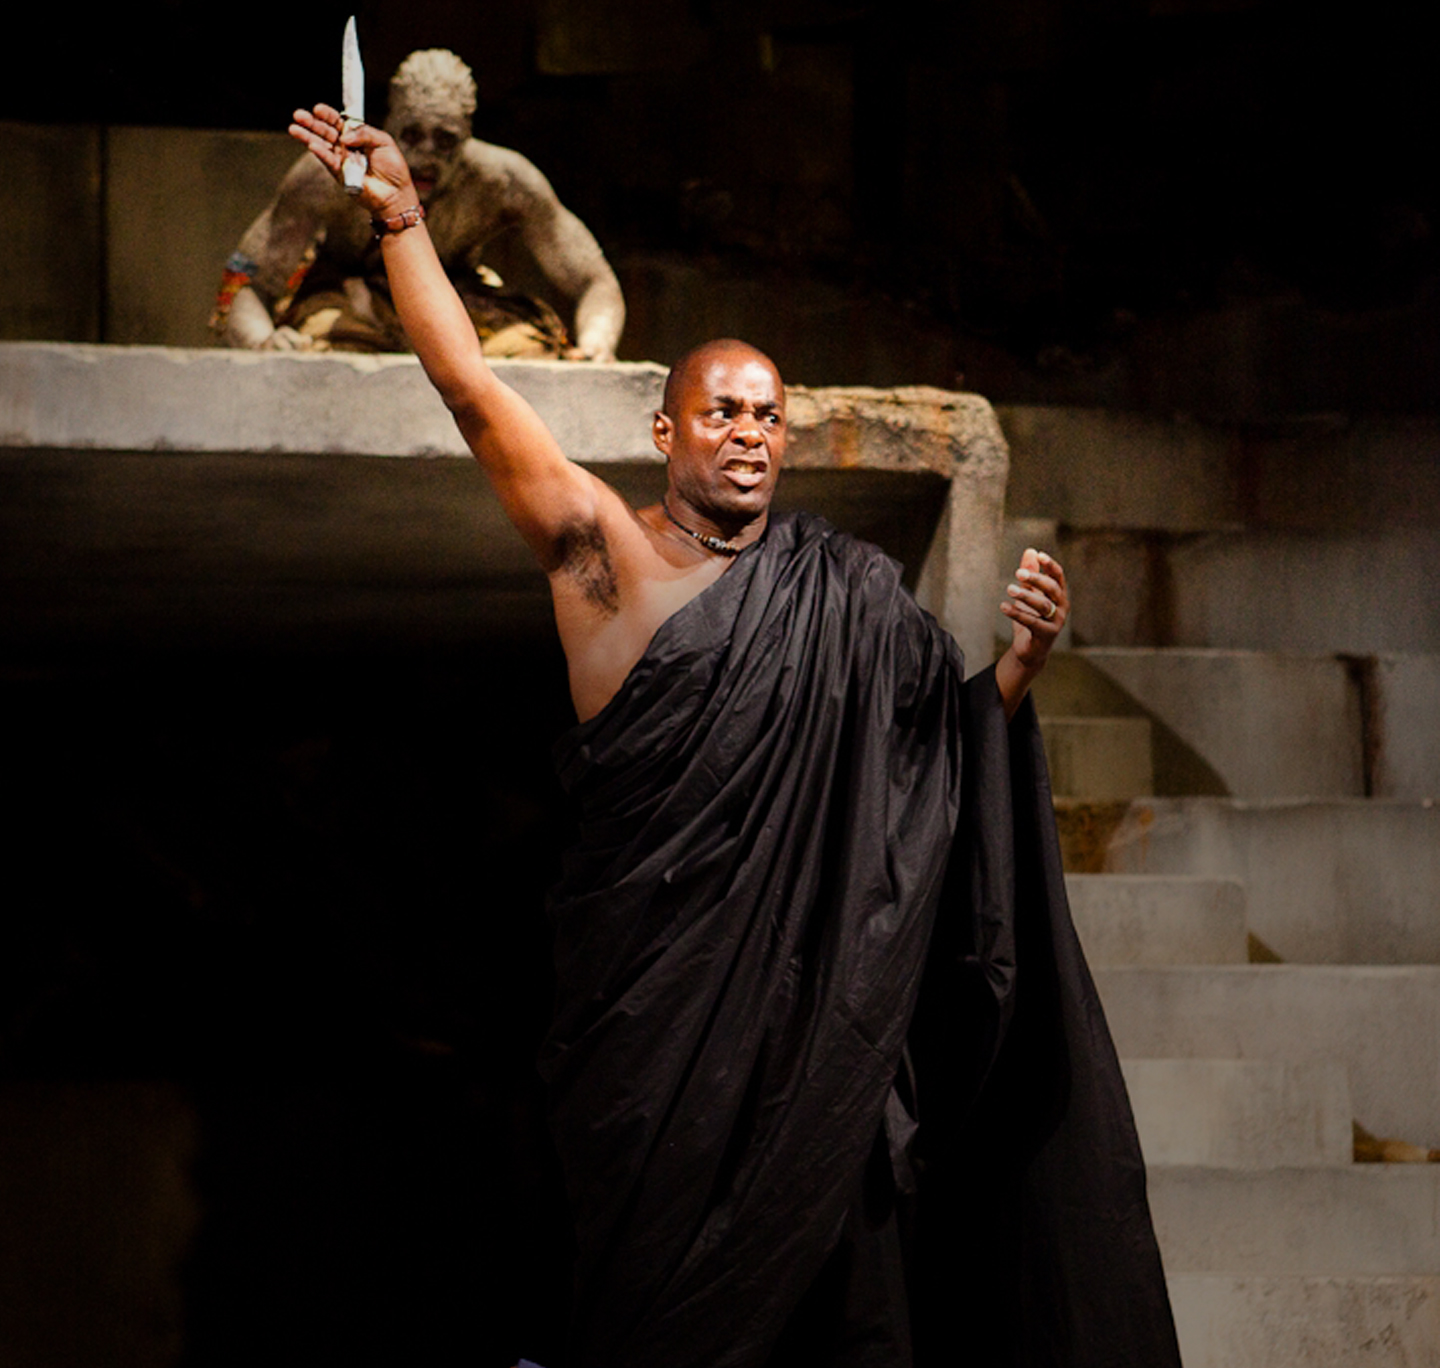 Angry man stands on stage with arm outstretched above his head holding a knife